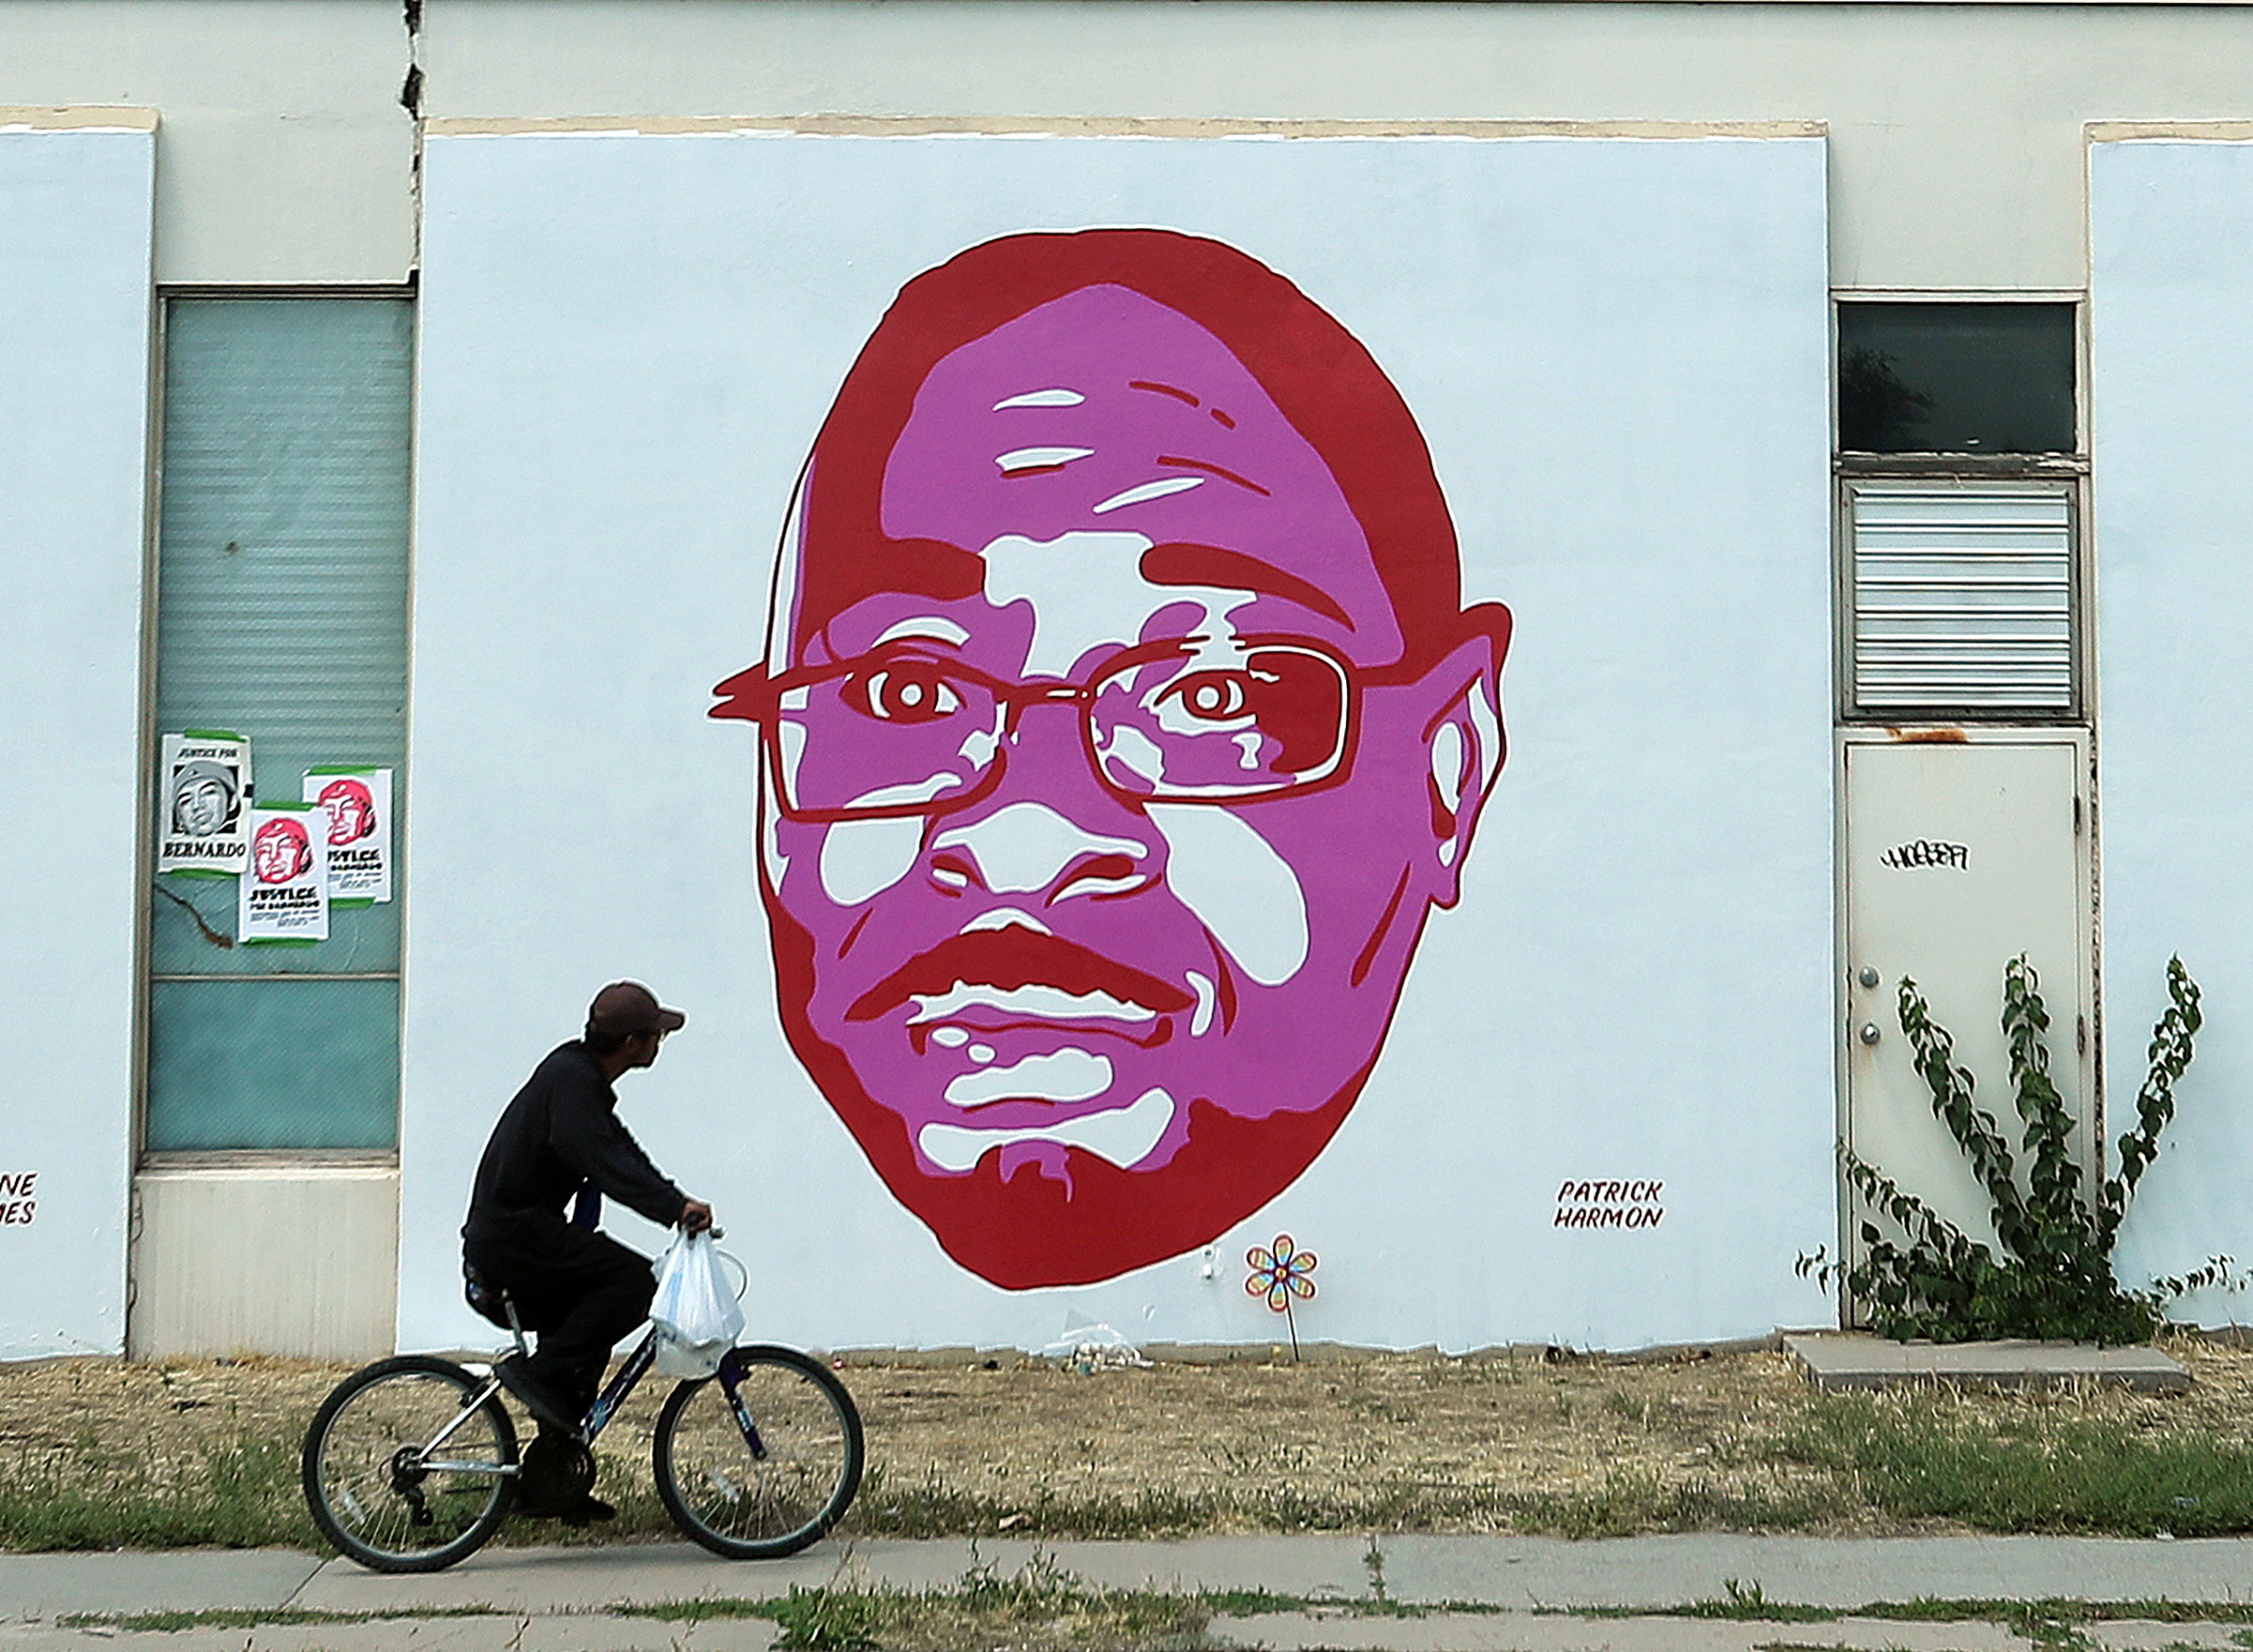 A bicyclist rides past a mural of Patrick Harmon, who was shot and killed by police, in Salt Lake City on Monday, July 13, 2020. A federal judge has dismissed a lawsuit from Harmon's family, rejecting their allegations of excessive force and racial discrimination.